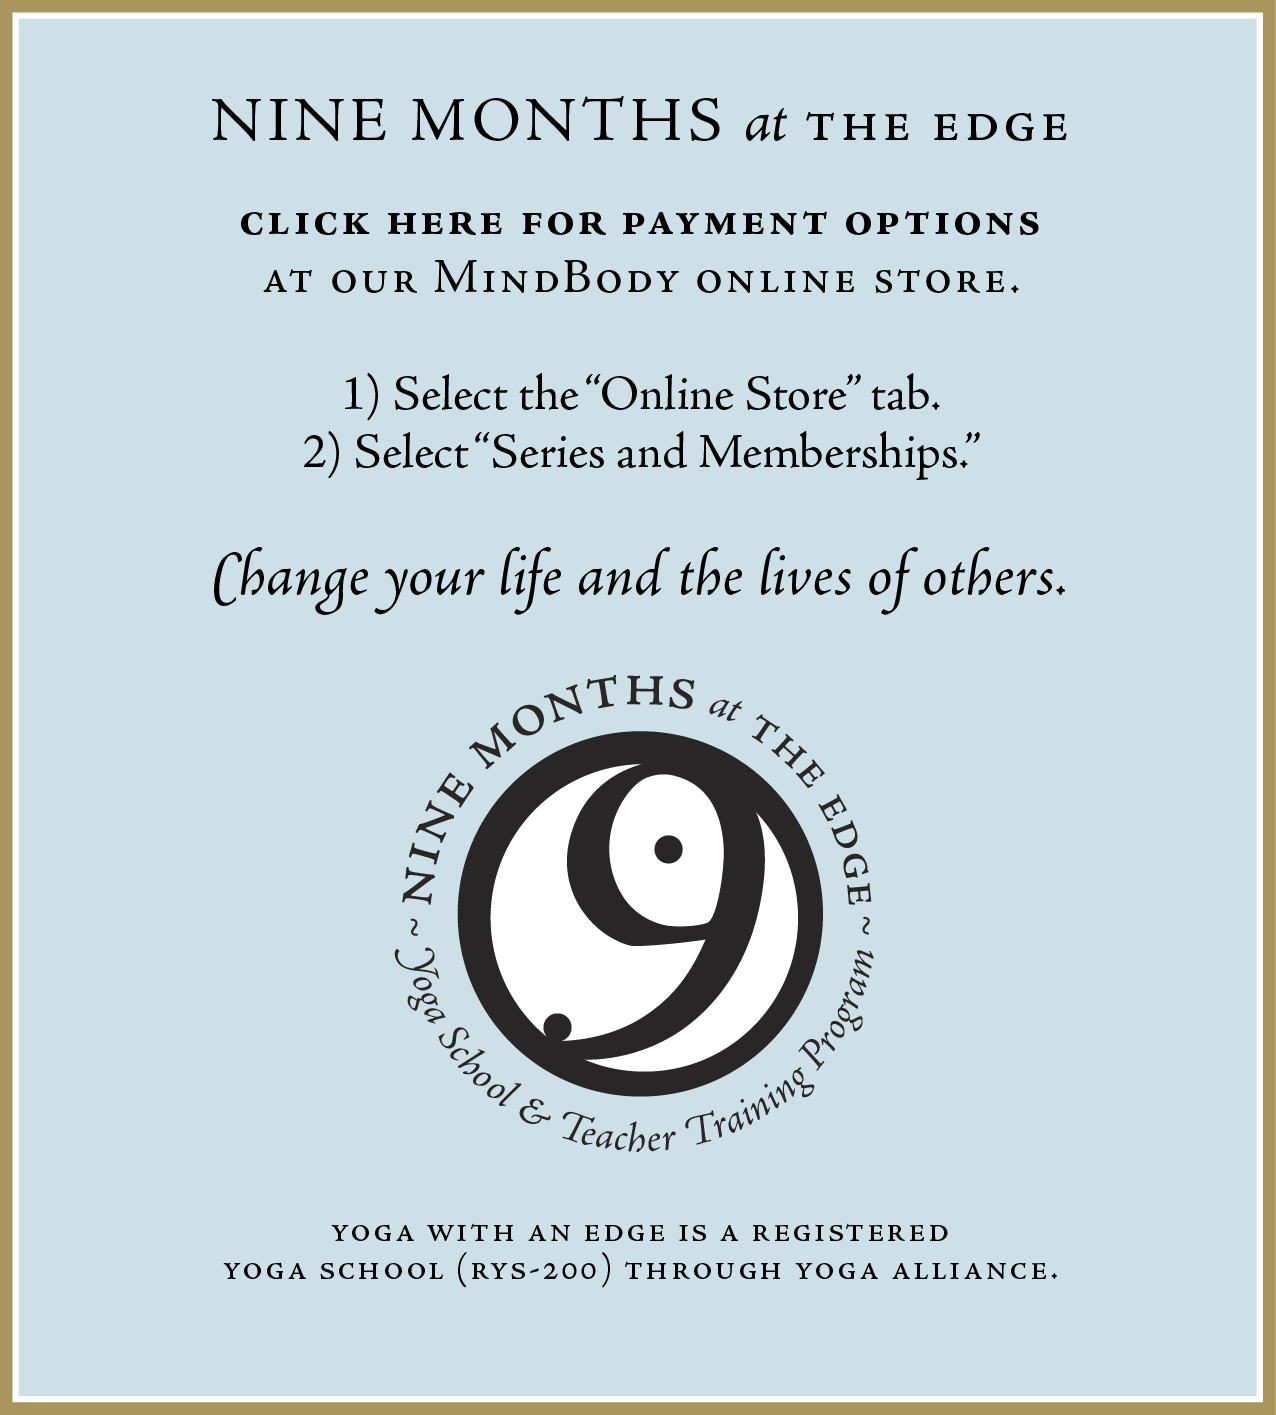 PURCHASEbuttonNINEMONTHS - Yoga School and Teacher Training - Yoga with an Edge